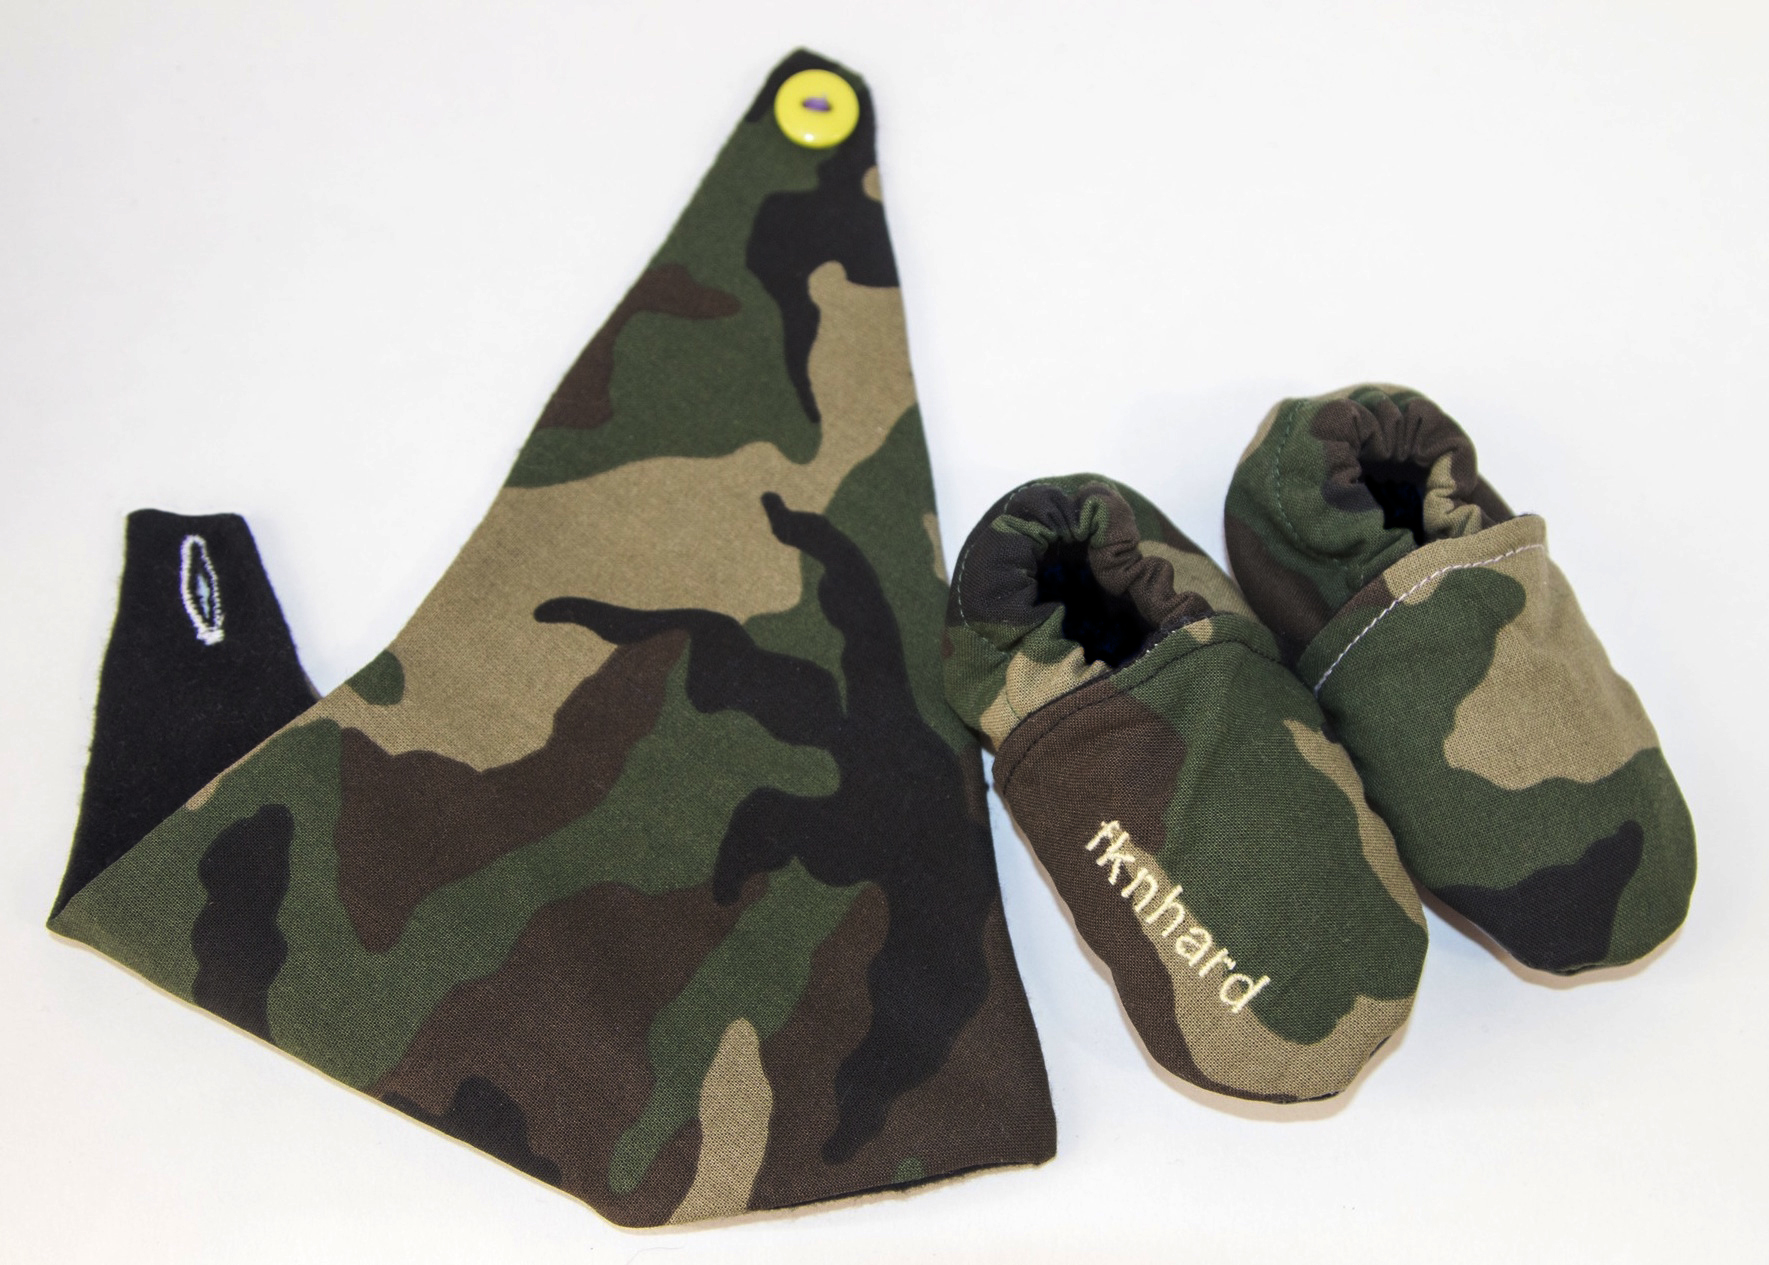 just-momo-baby-fknhard-magazine-toddler-camouflage-bib-camo-booties-embroidery-woodland-baby-gear-hankerchief-baby-shoes-slippers-naty-calle